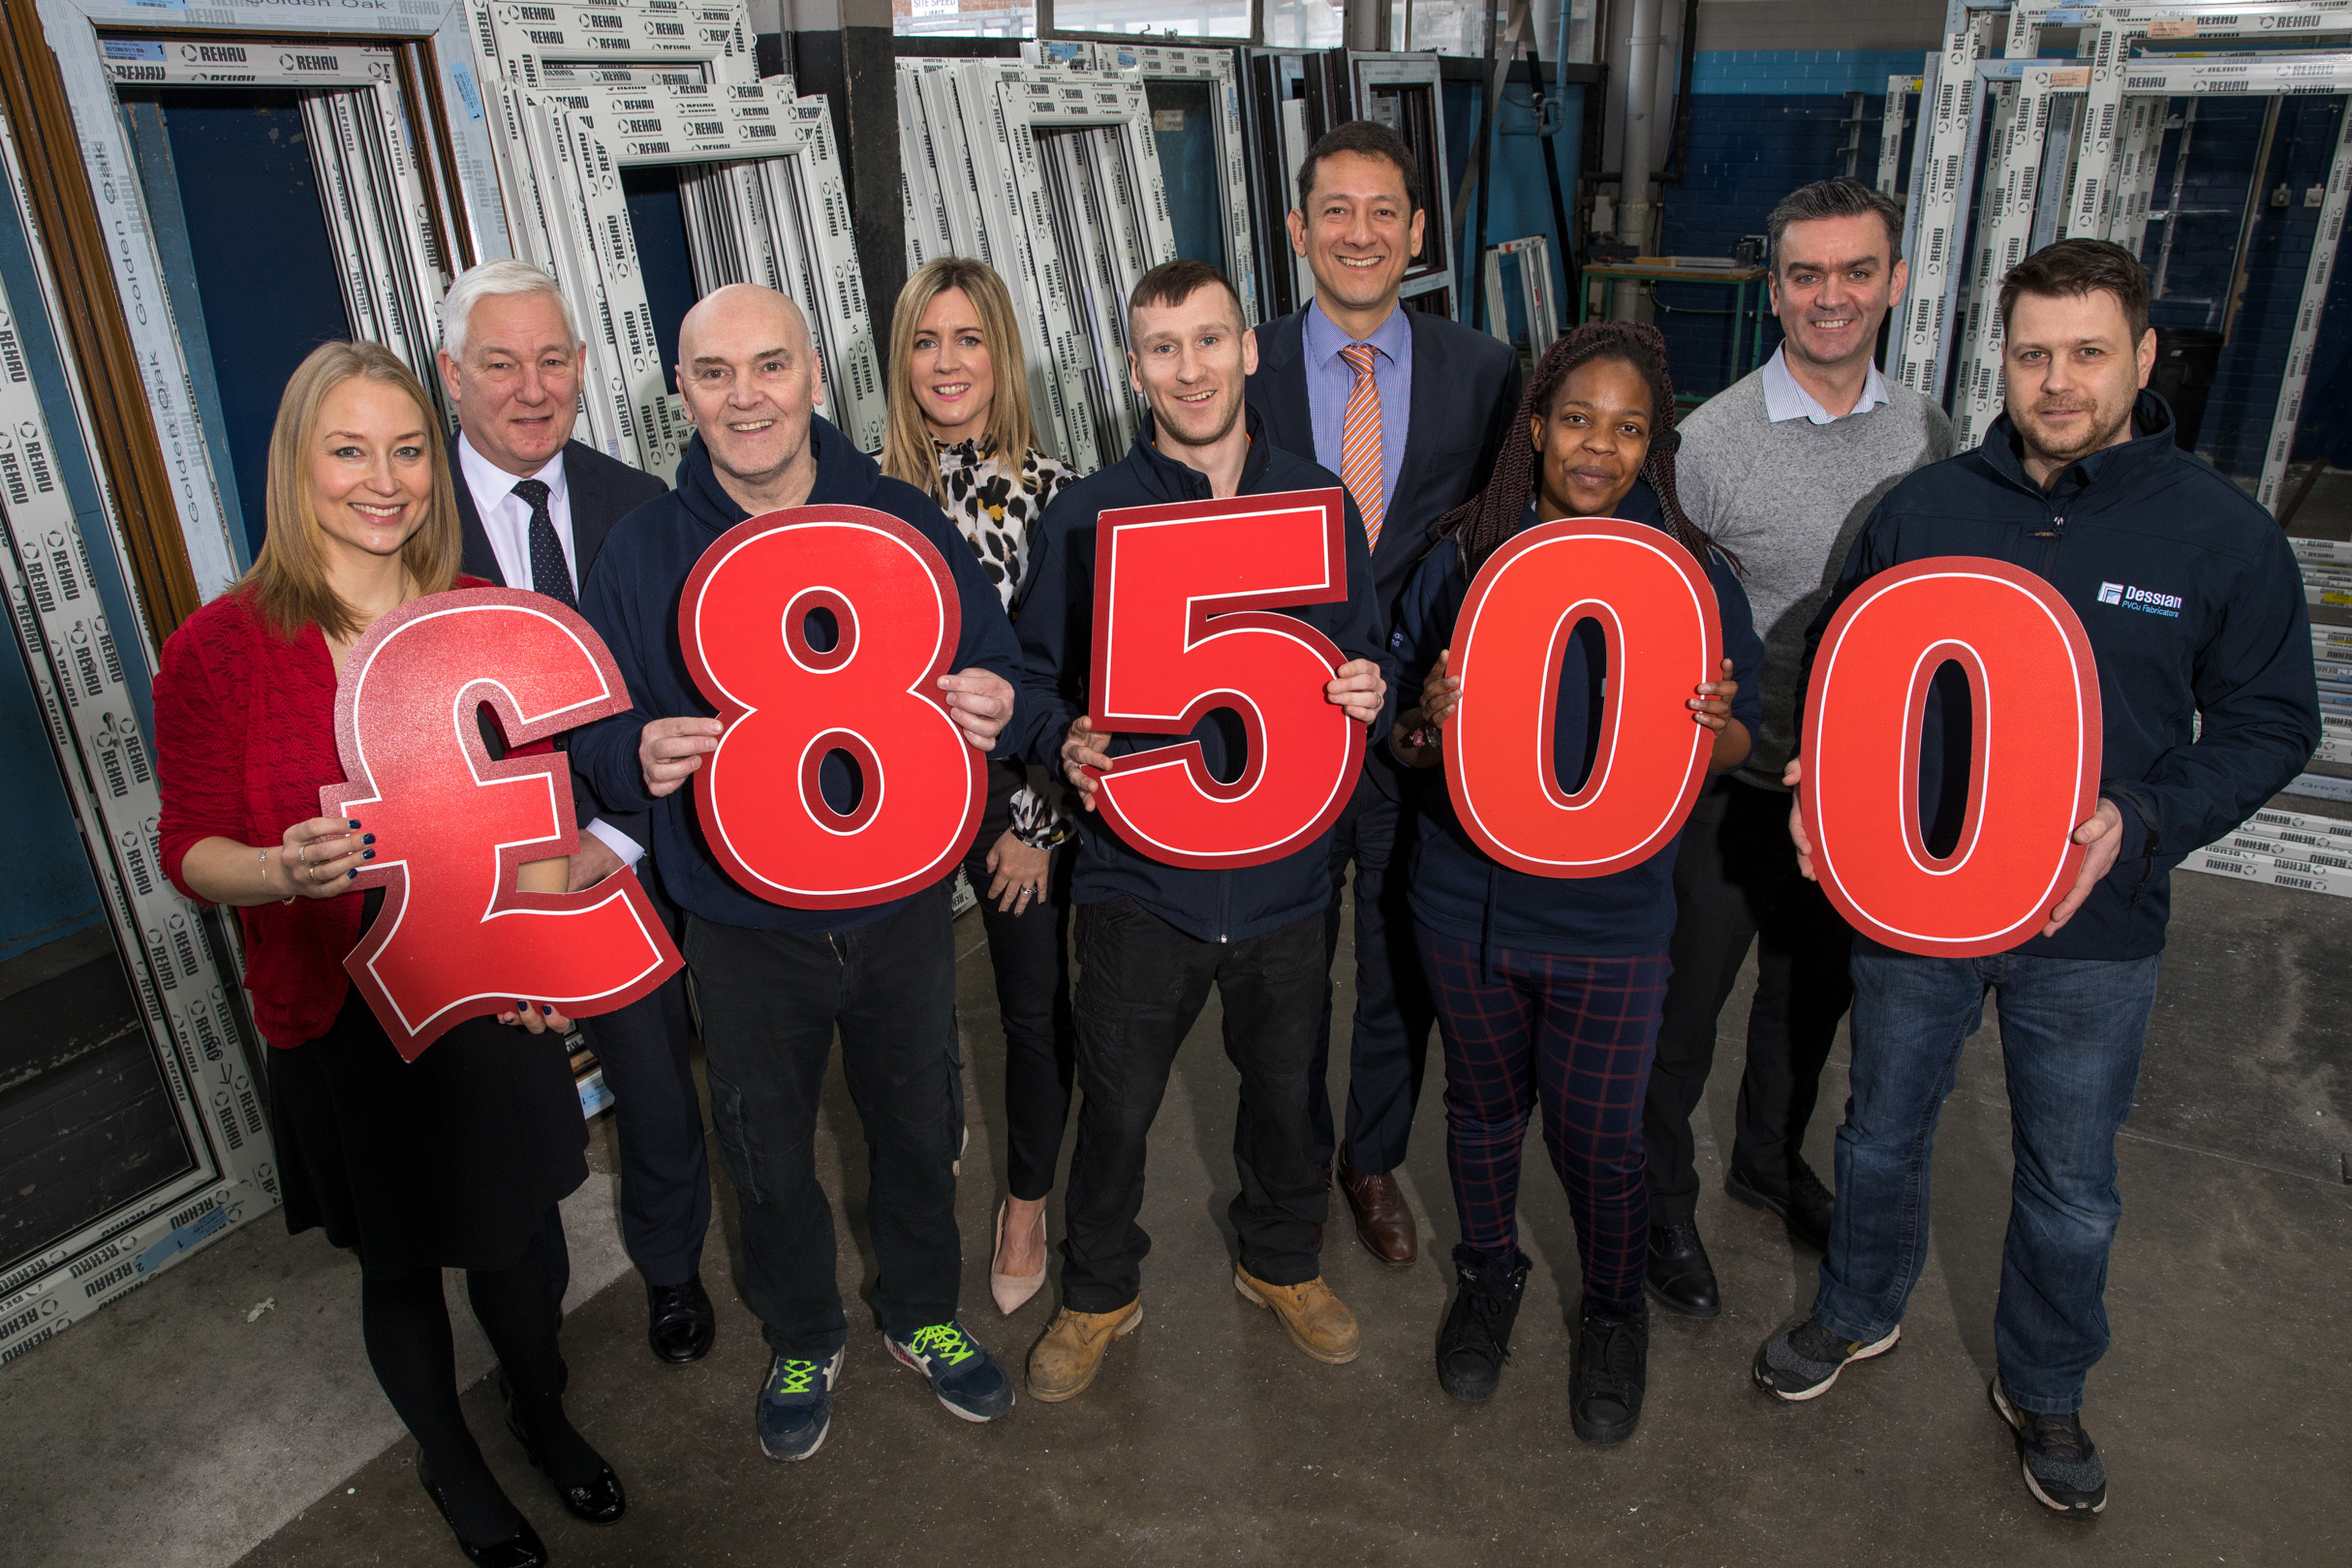 Windowmate helps raise £8500 for Action Cancer